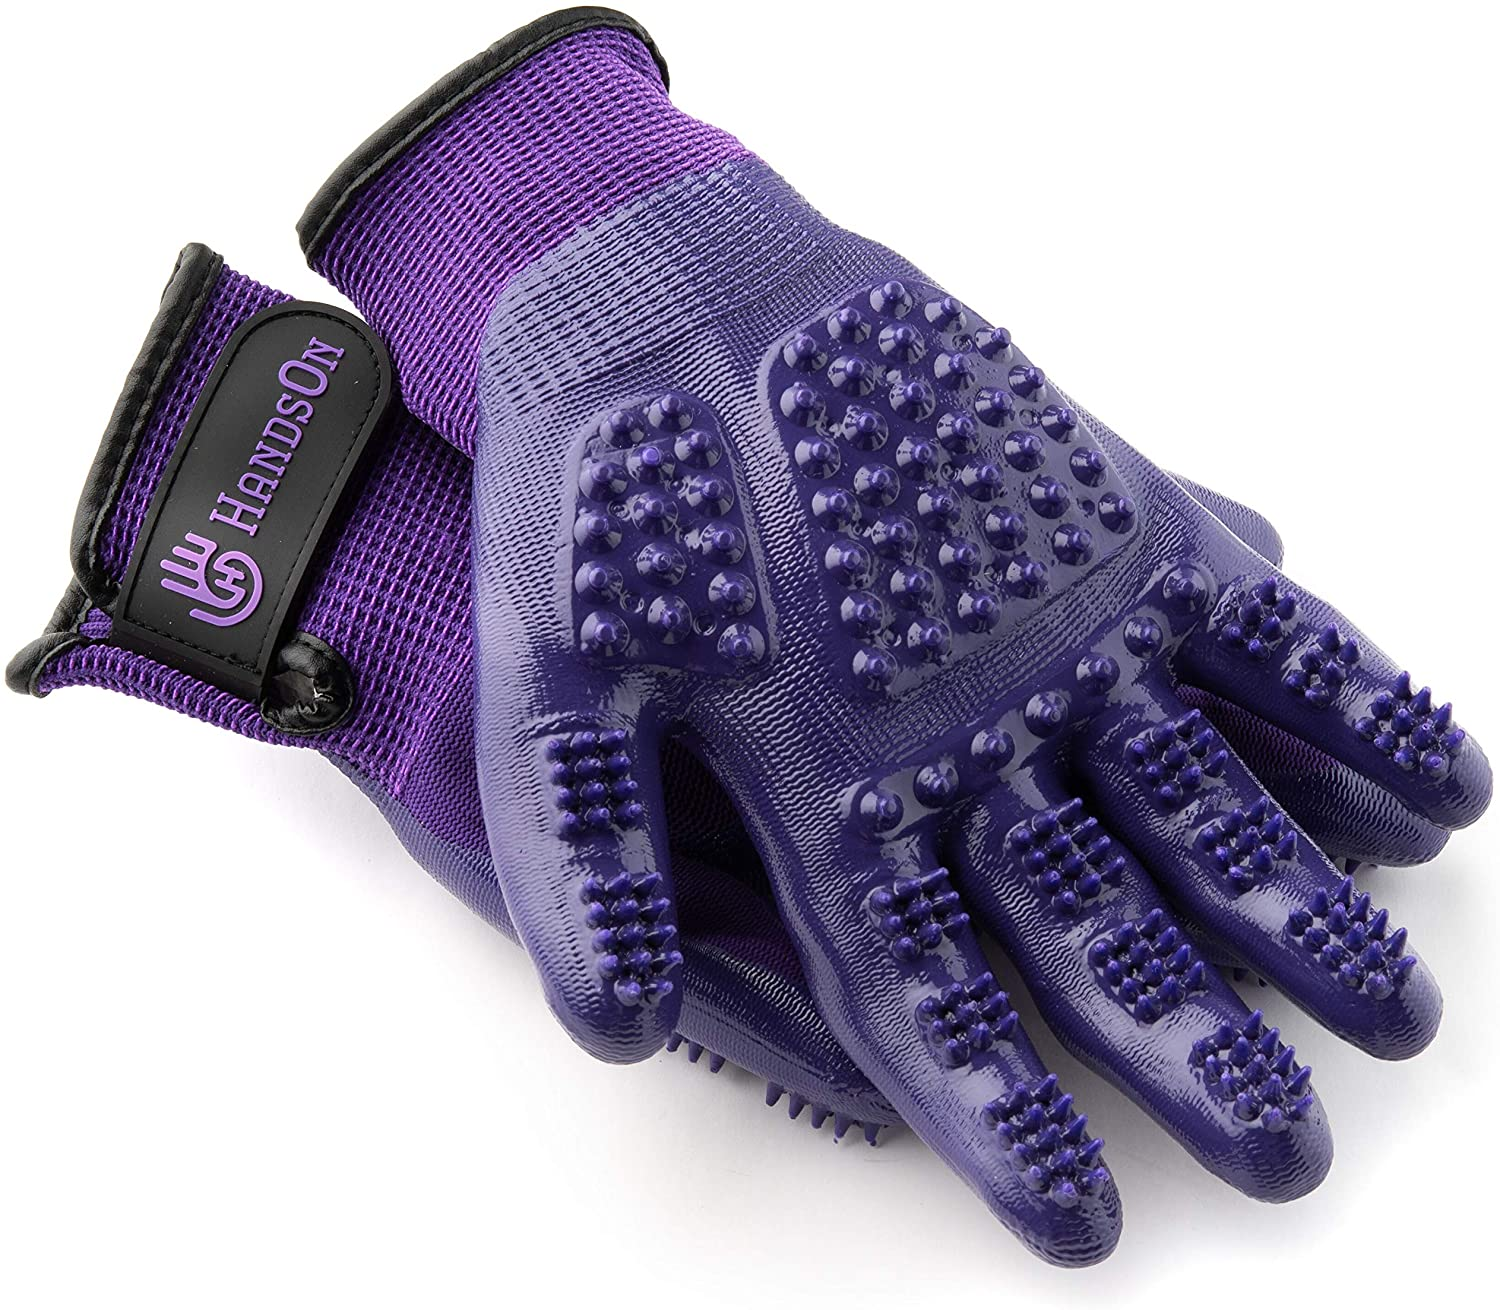 Classier: Buy H HANDSON HandsOn Pet Grooming Gloves - Patented #1 Ranked, Award Winning Shedding, Bathing, & Hair Remover Gloves - Gentle Brush for Cats, Dogs, and Horses